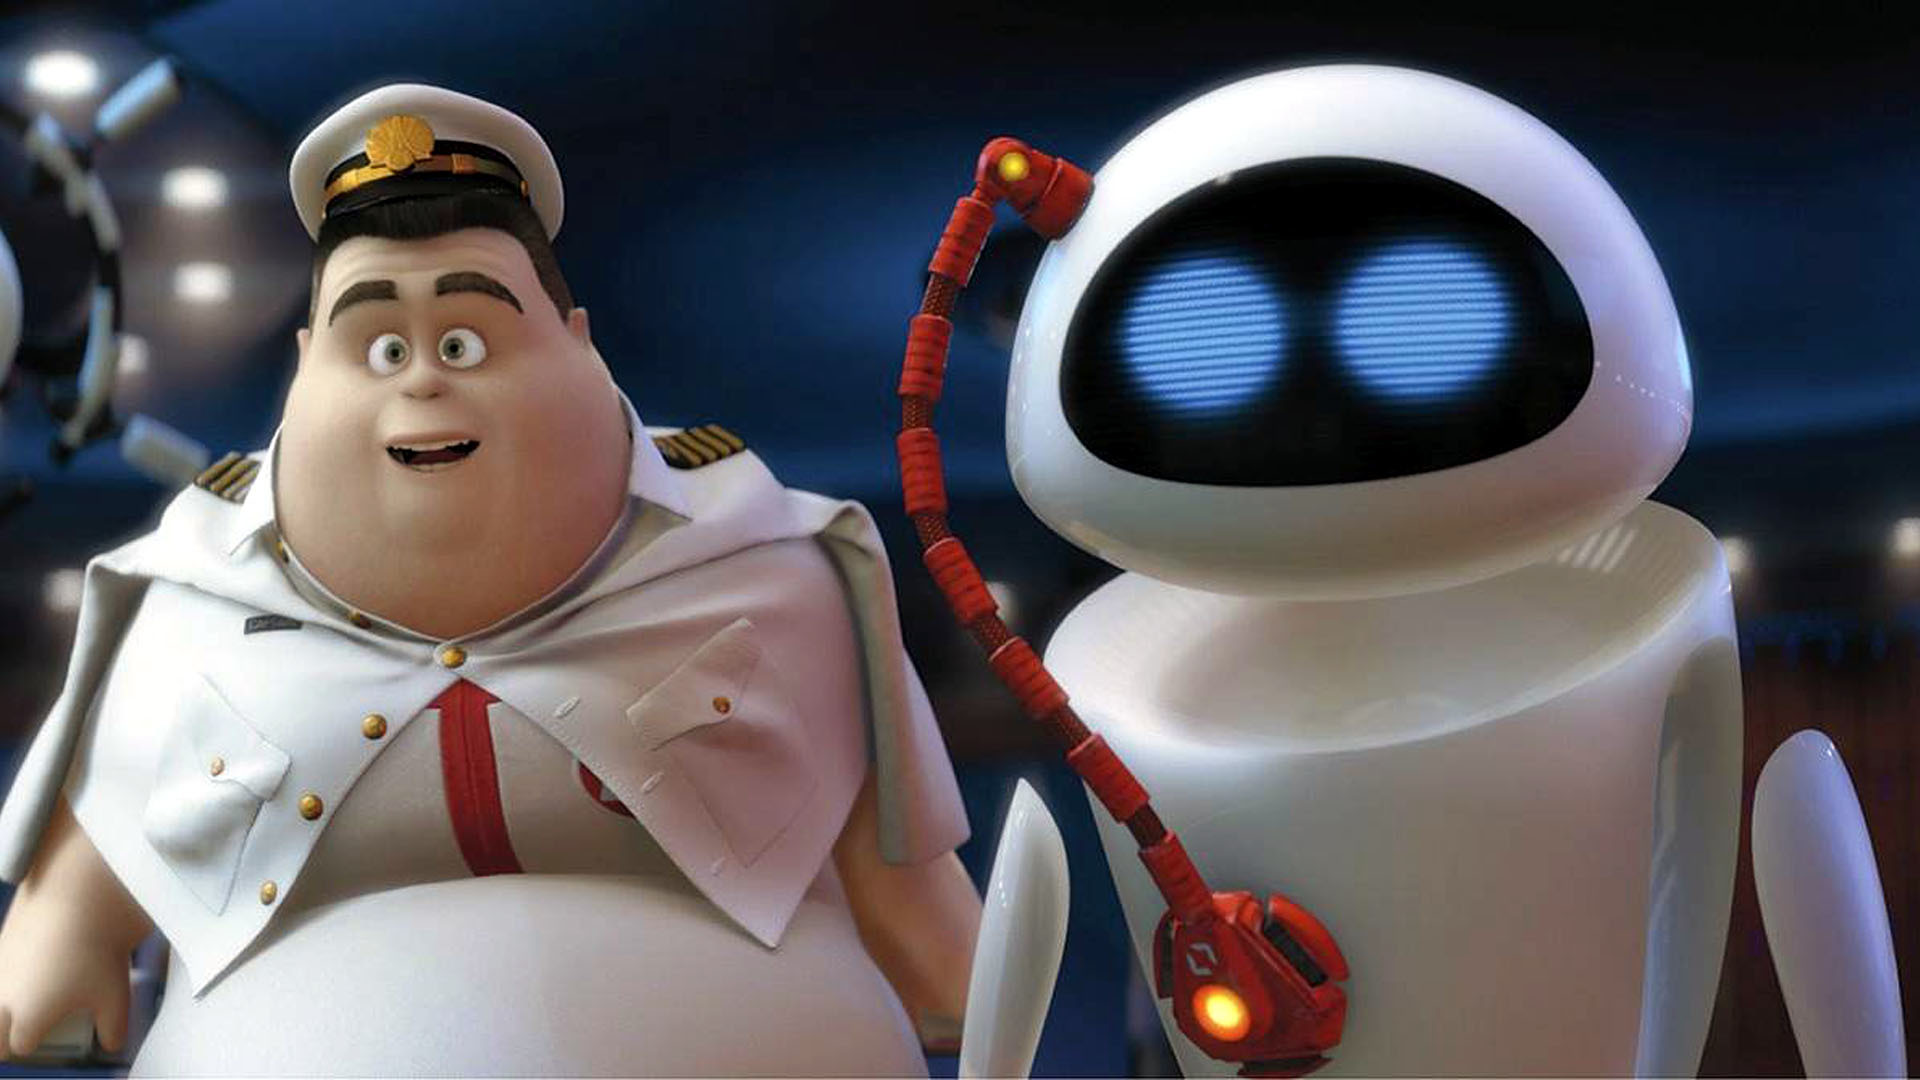 Movies wall-e eve Movie HD Wallpaper